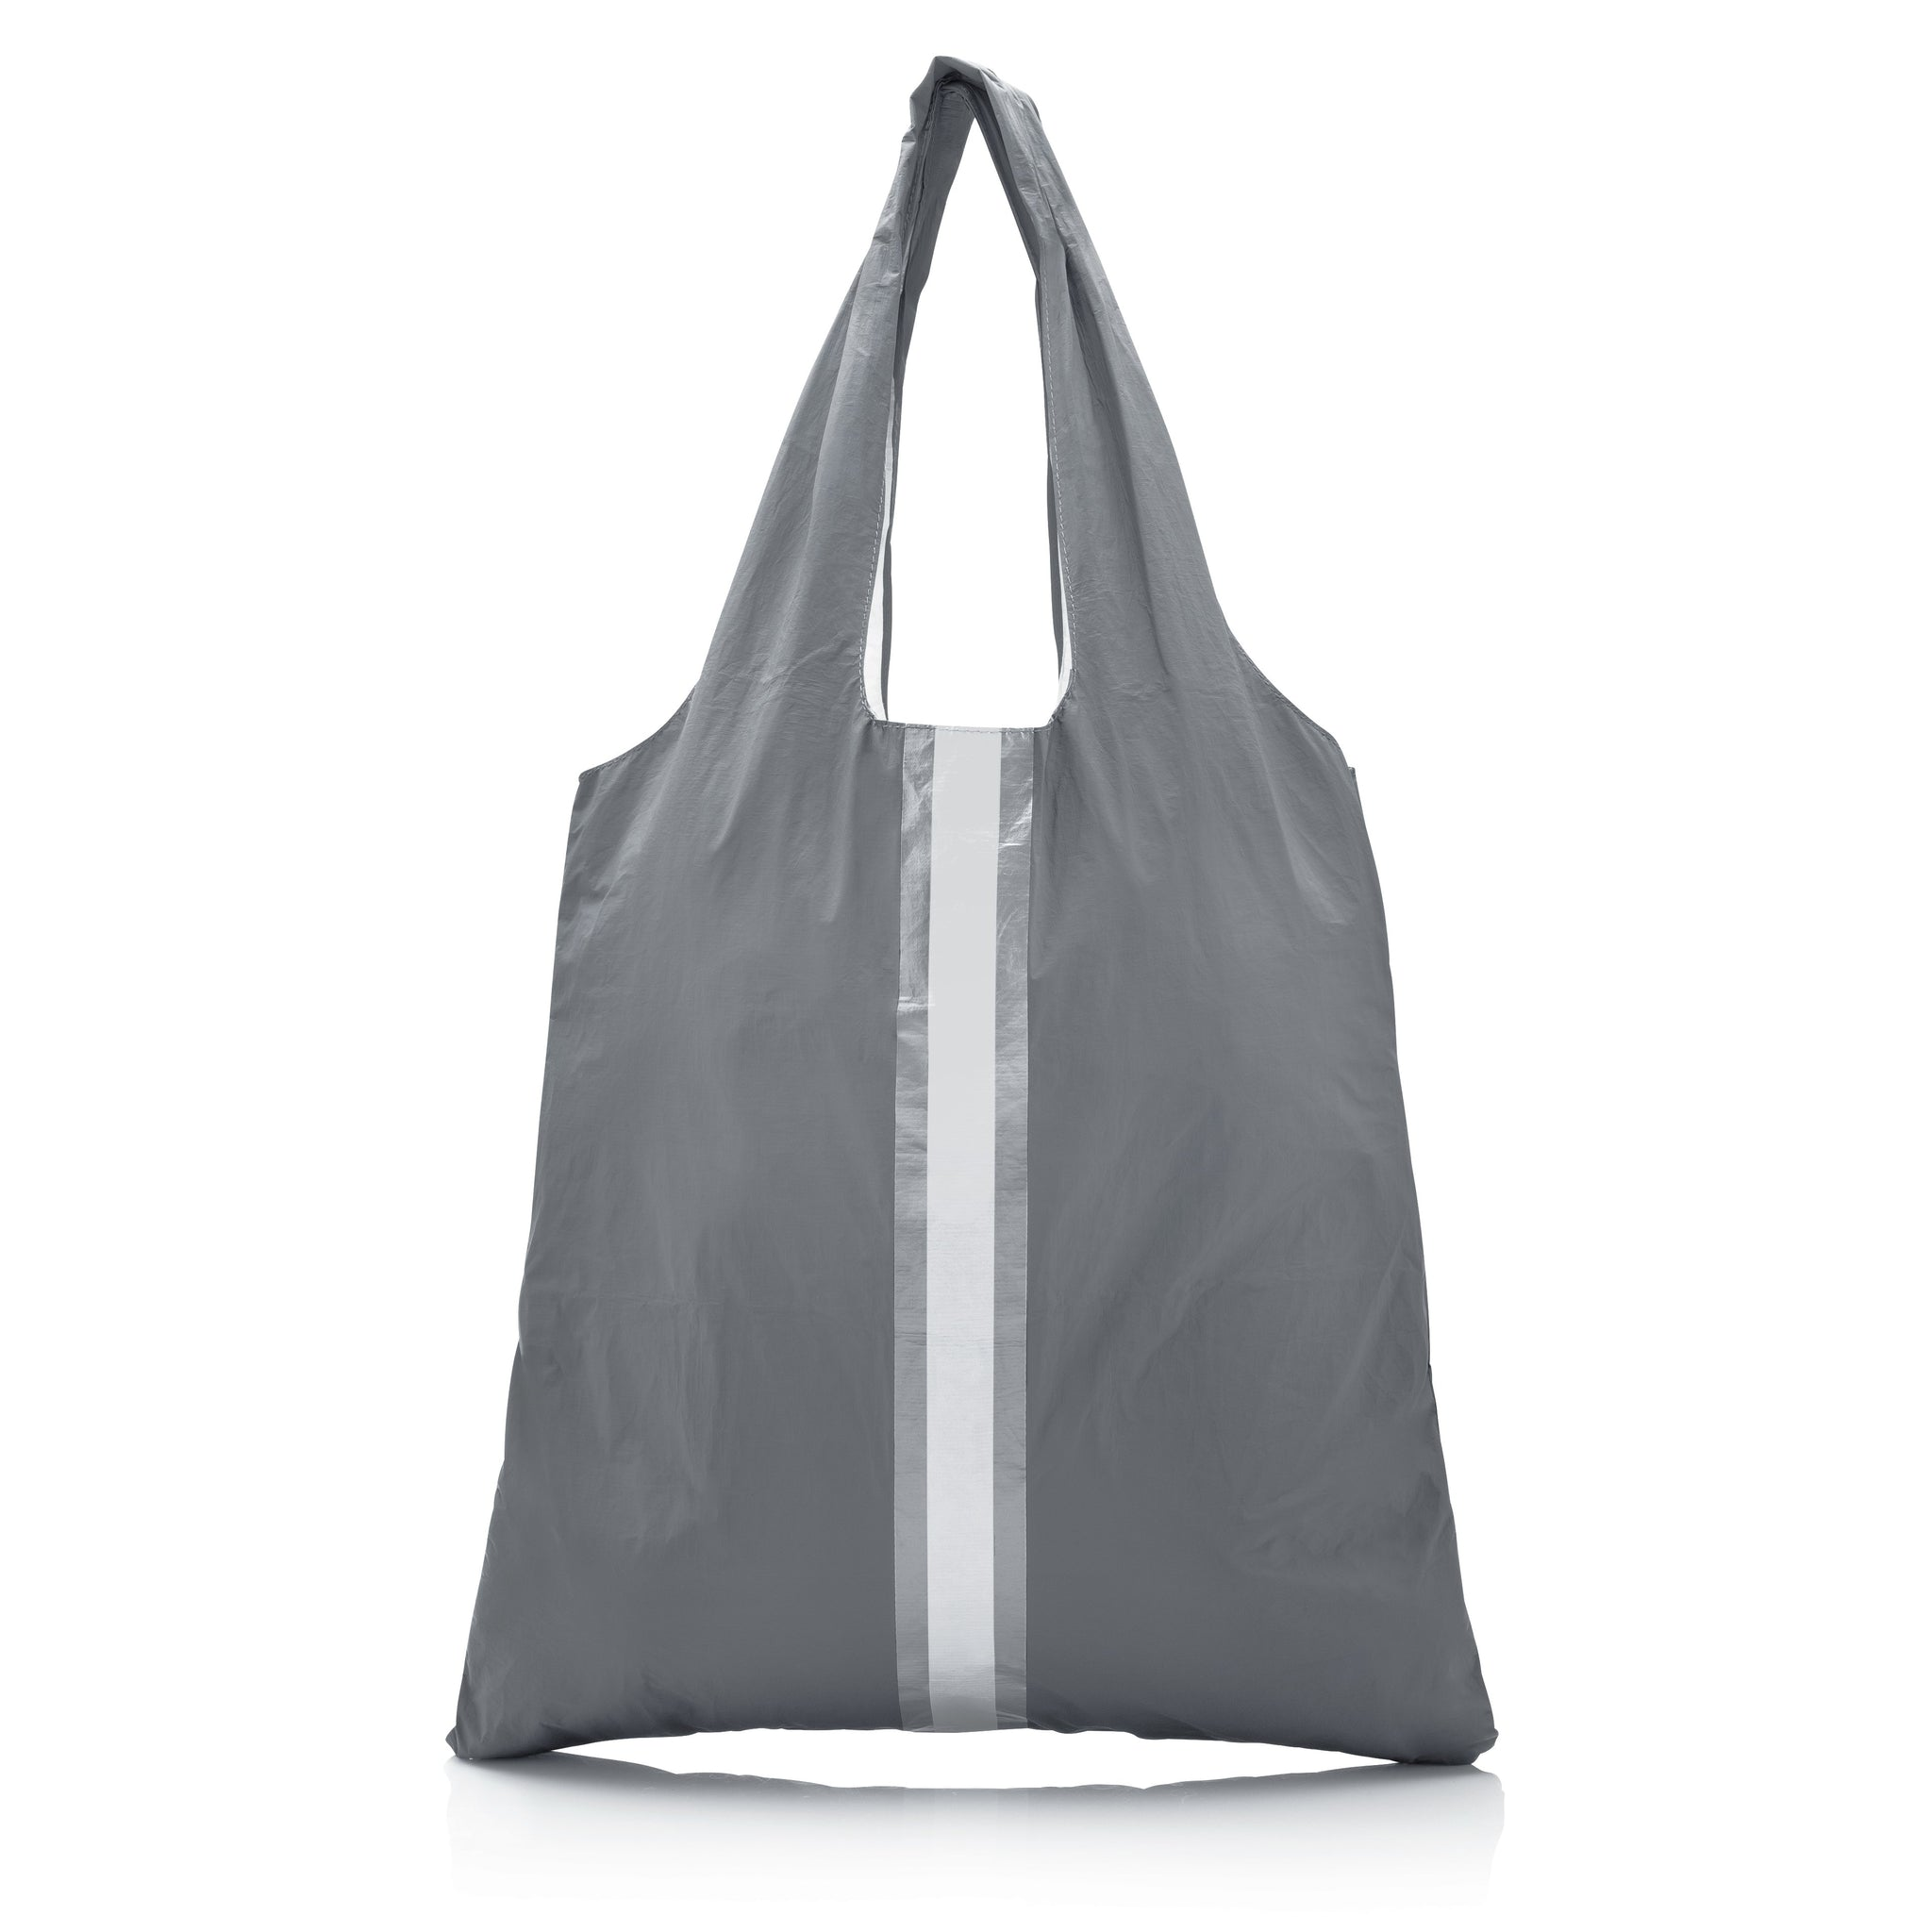 Carryall Tote - Cool Gray HLT Collection with a Double Metallic Line